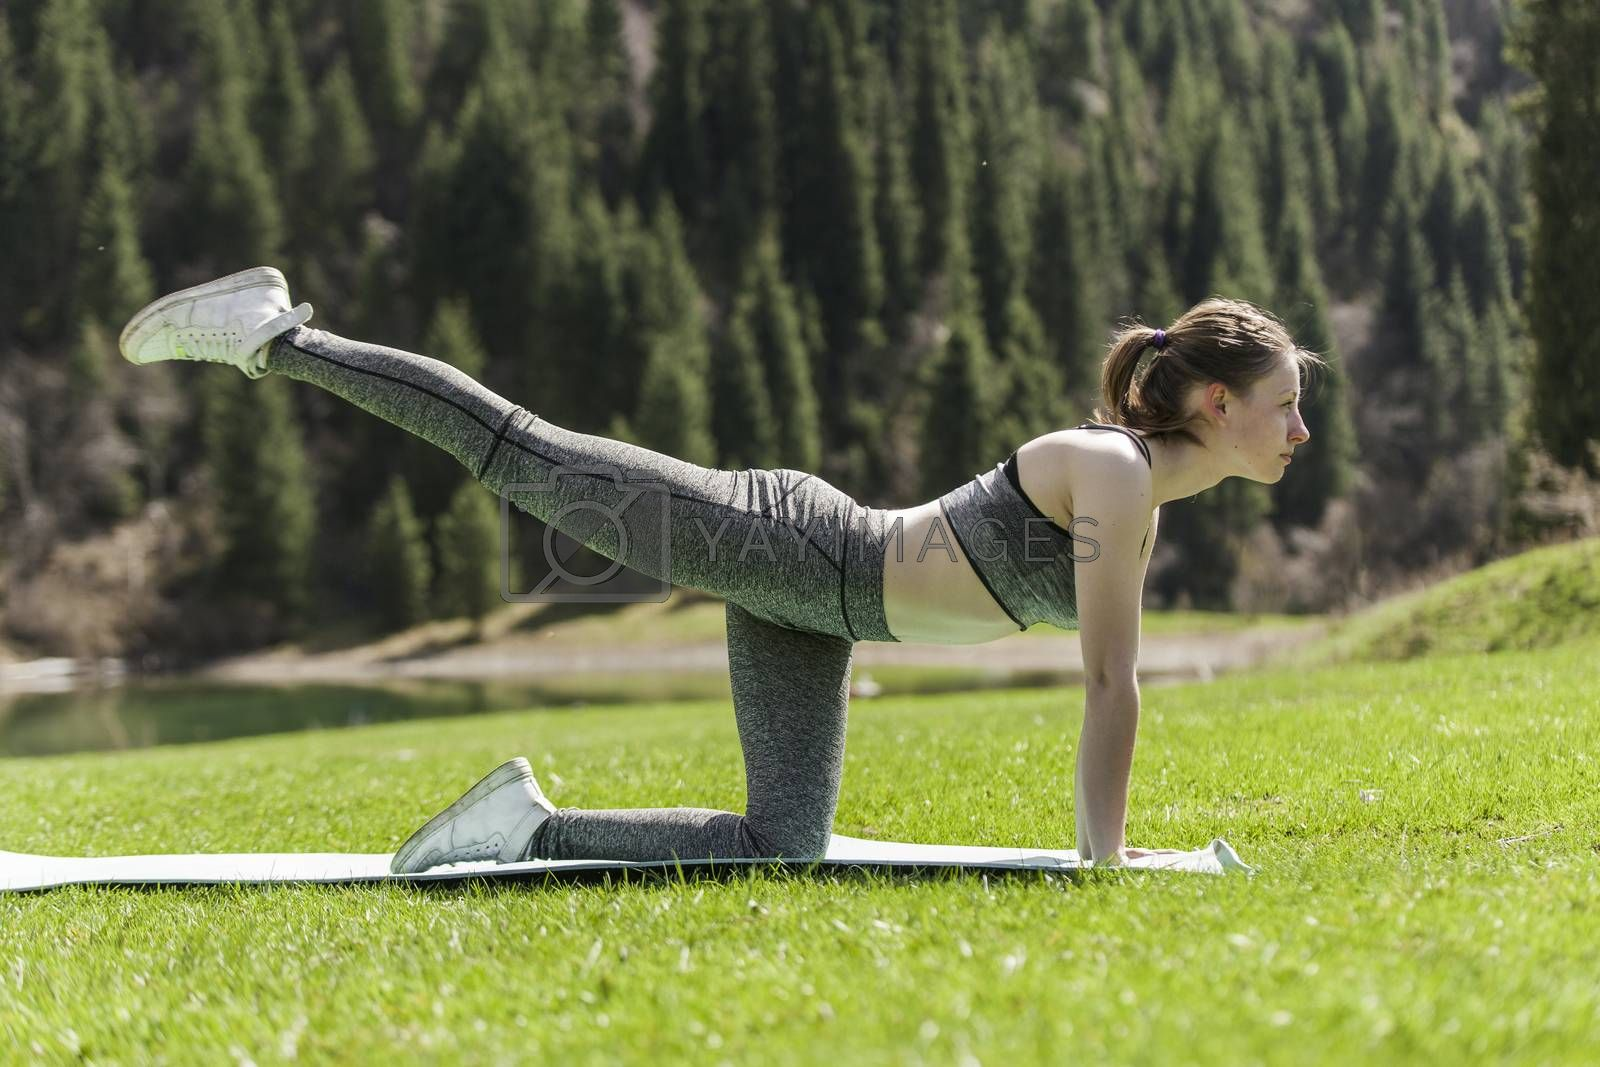 The girl on a green lawn practices yoga, costs in a pose